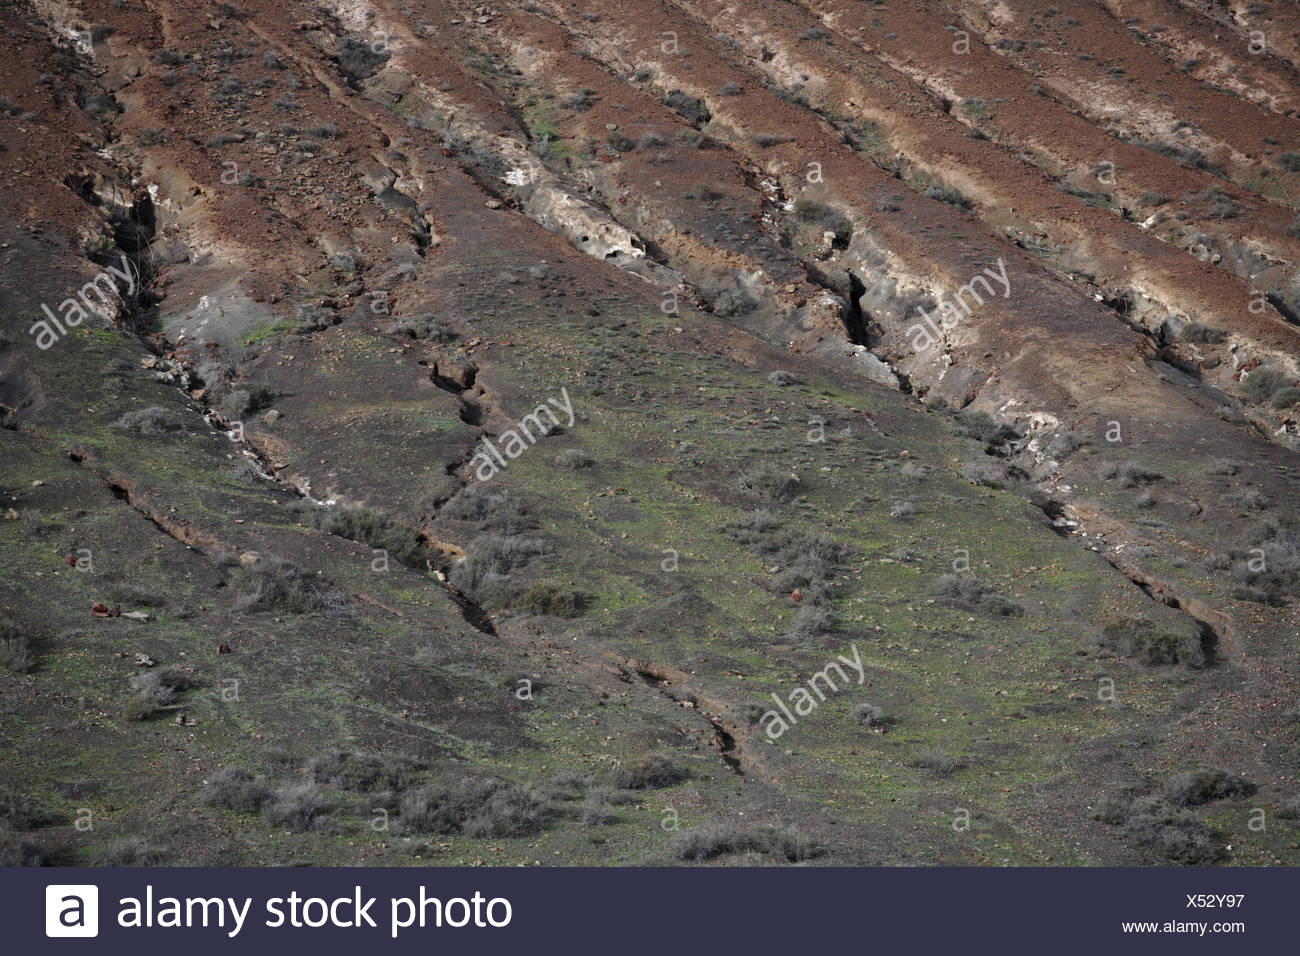 Spain, the Canaries, island Lanzarote, scenery, volcanically, erosion sulcuses, volcano island, erosion, dryness, rock, fissures, lava scenery, outside, deserted, floor, nature, - Stock Image